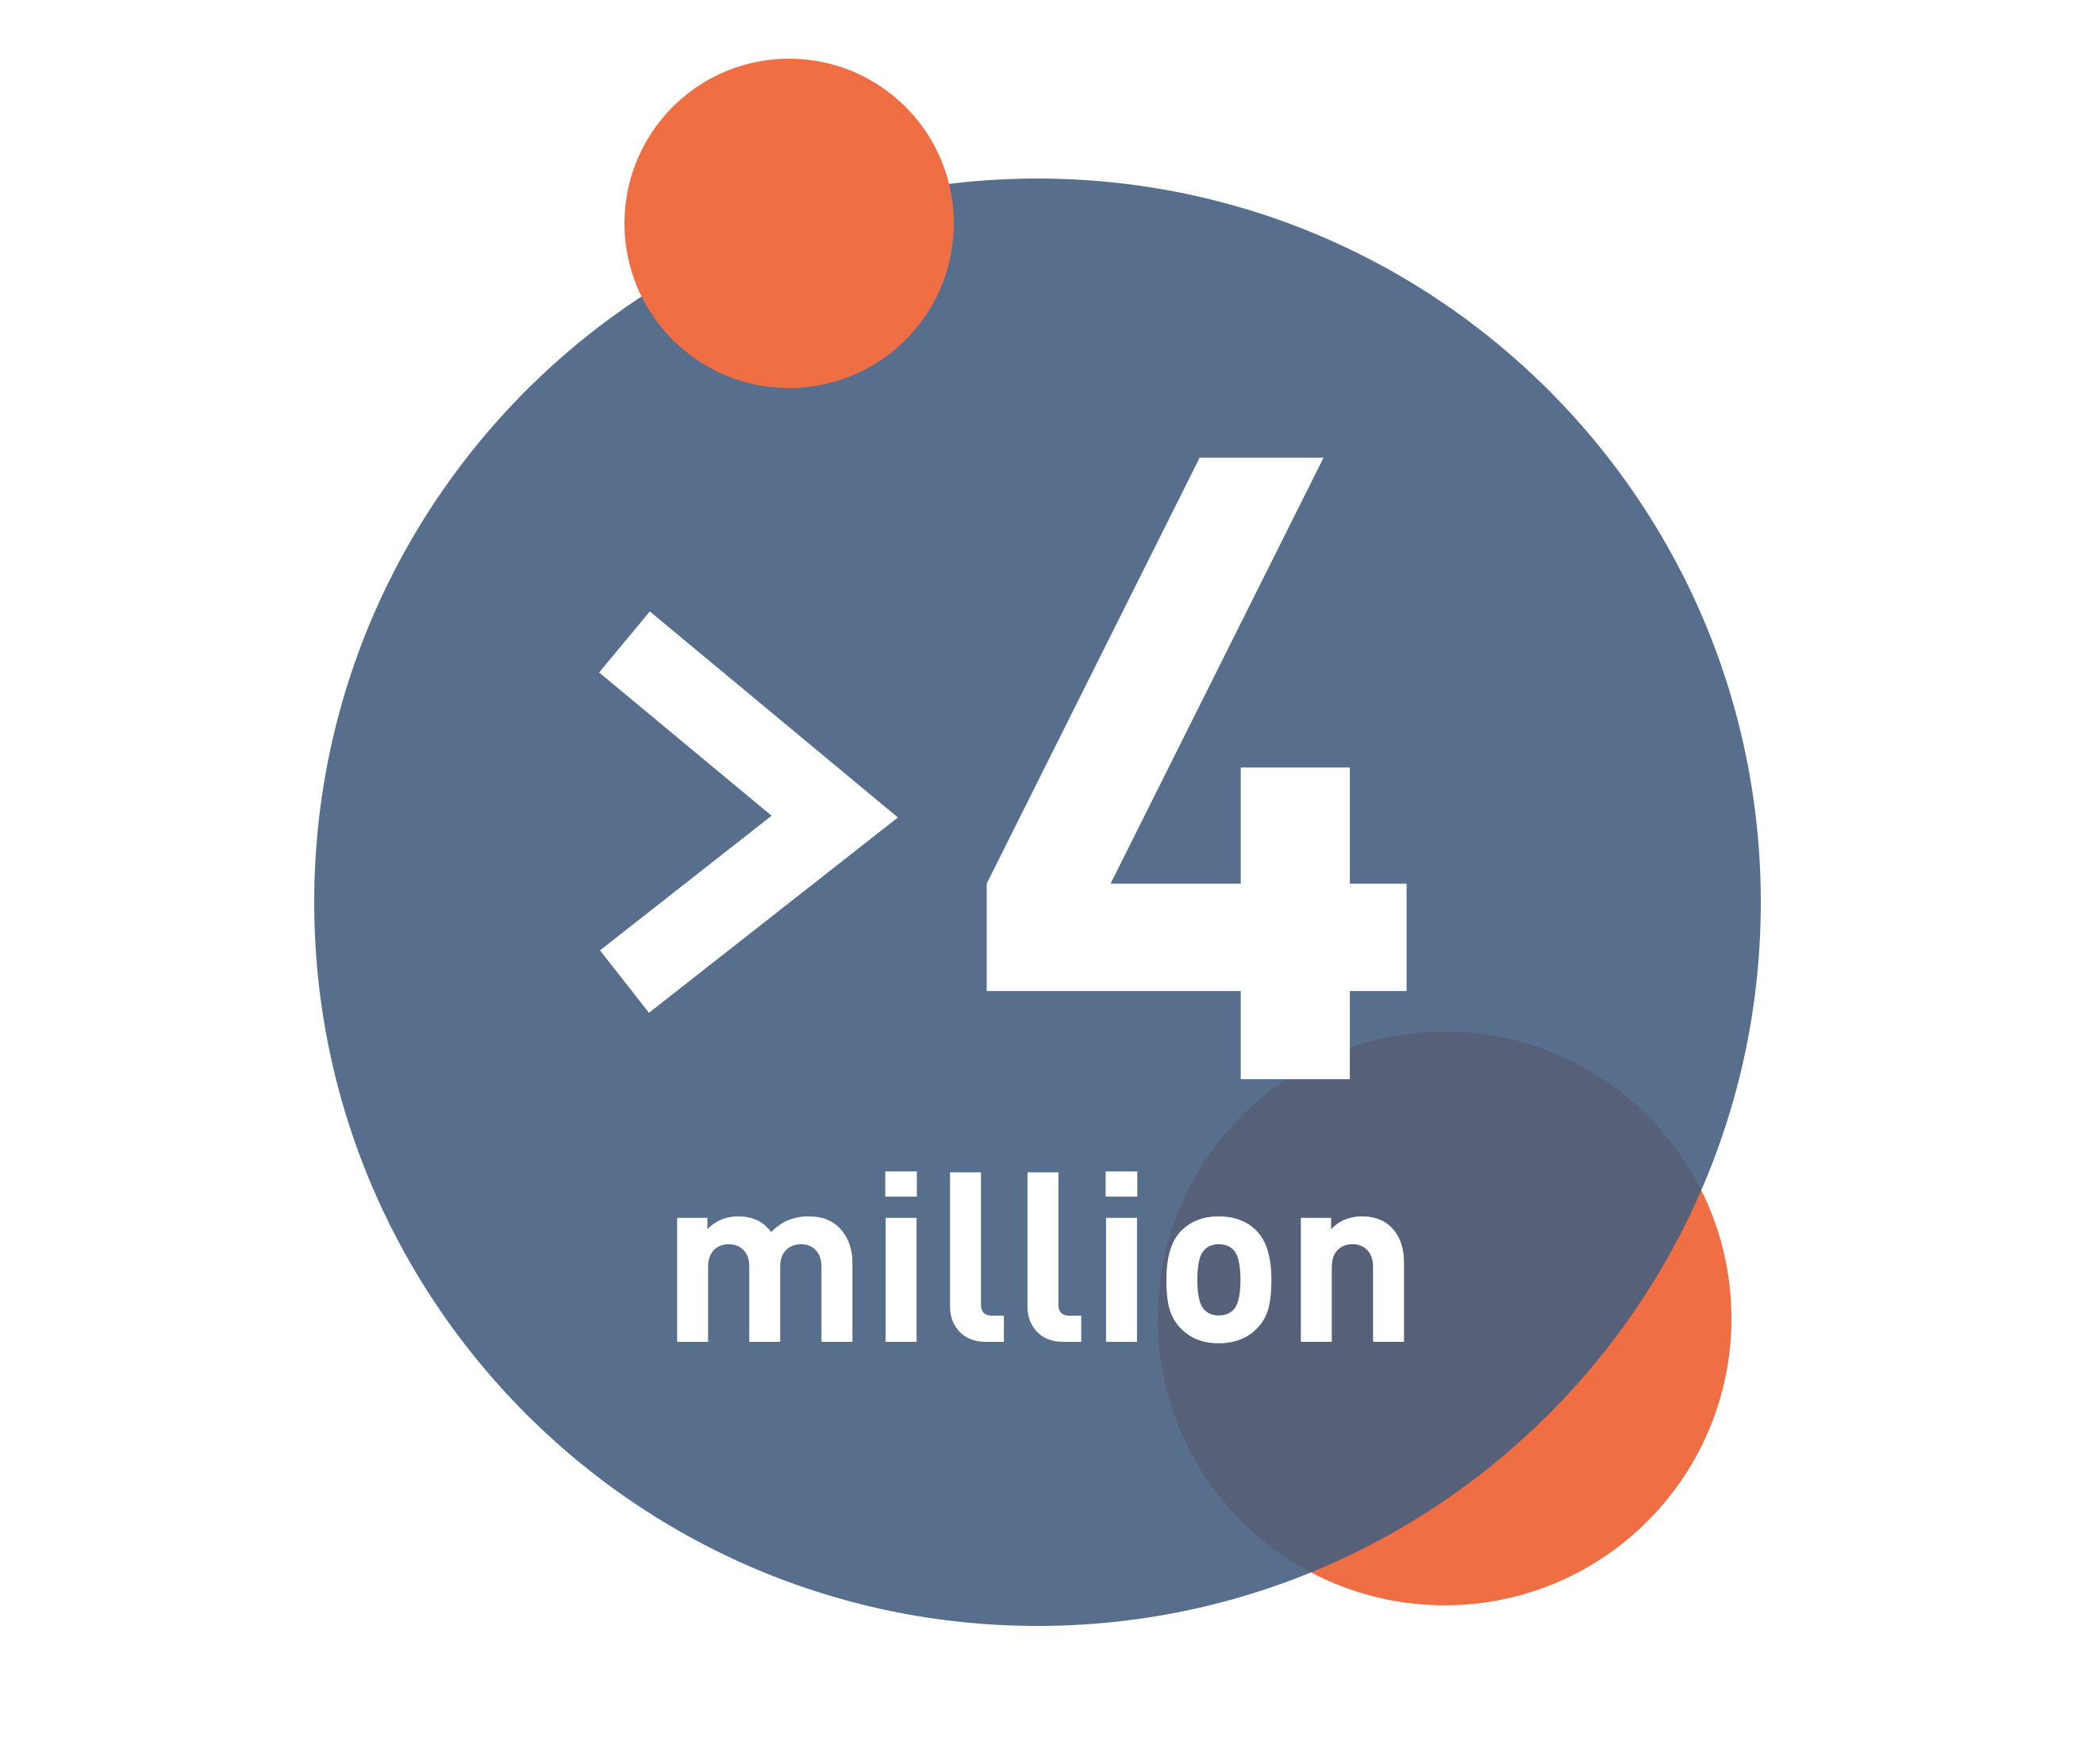 Our machine learning models have been trained on more than 4 million transactions and counting